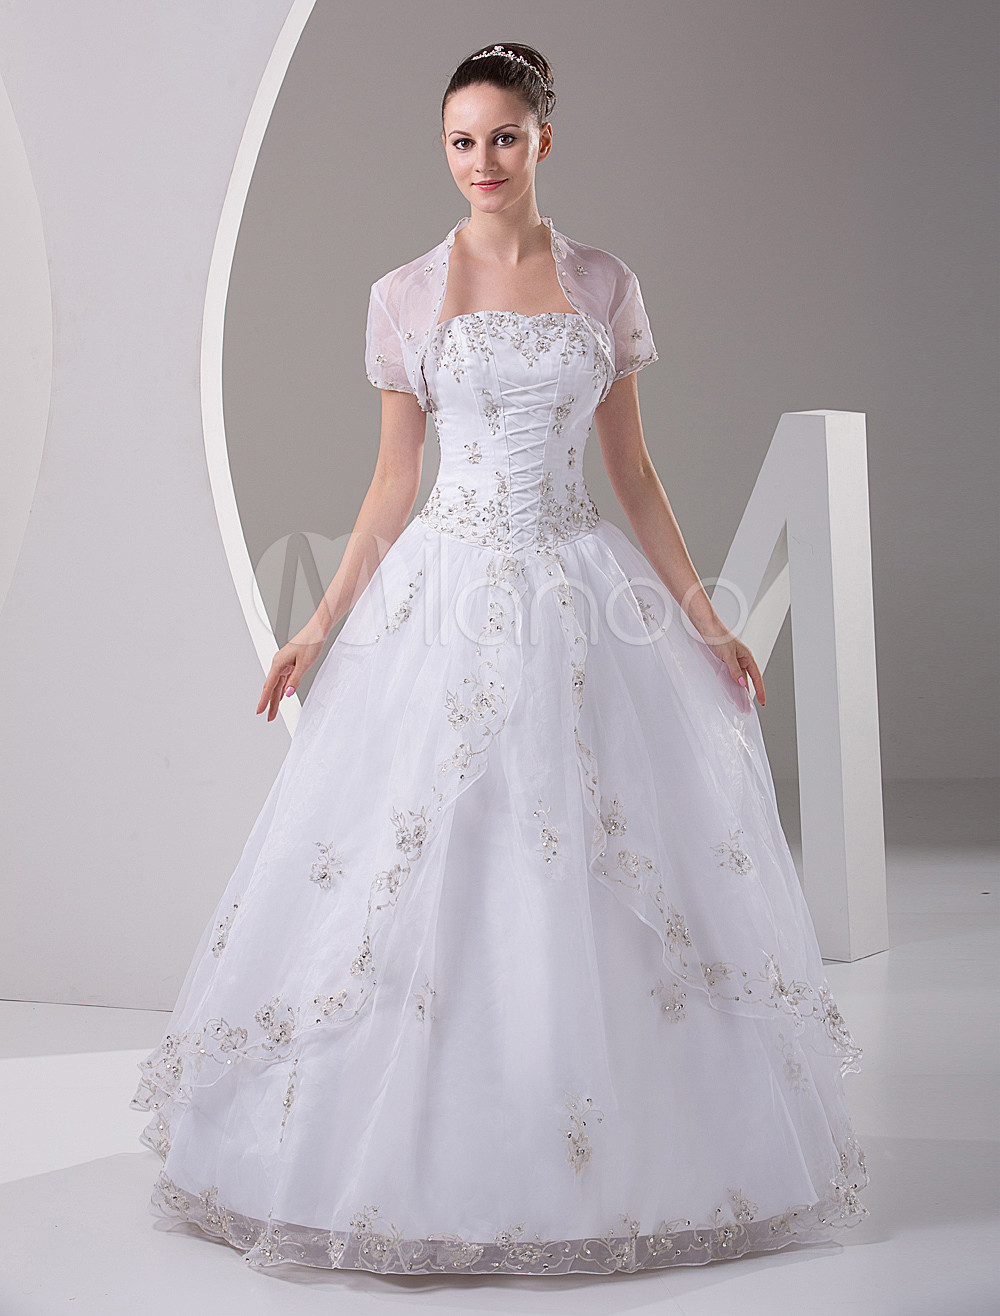 White Quinceanera Dress Strapless Satin Organza Dress